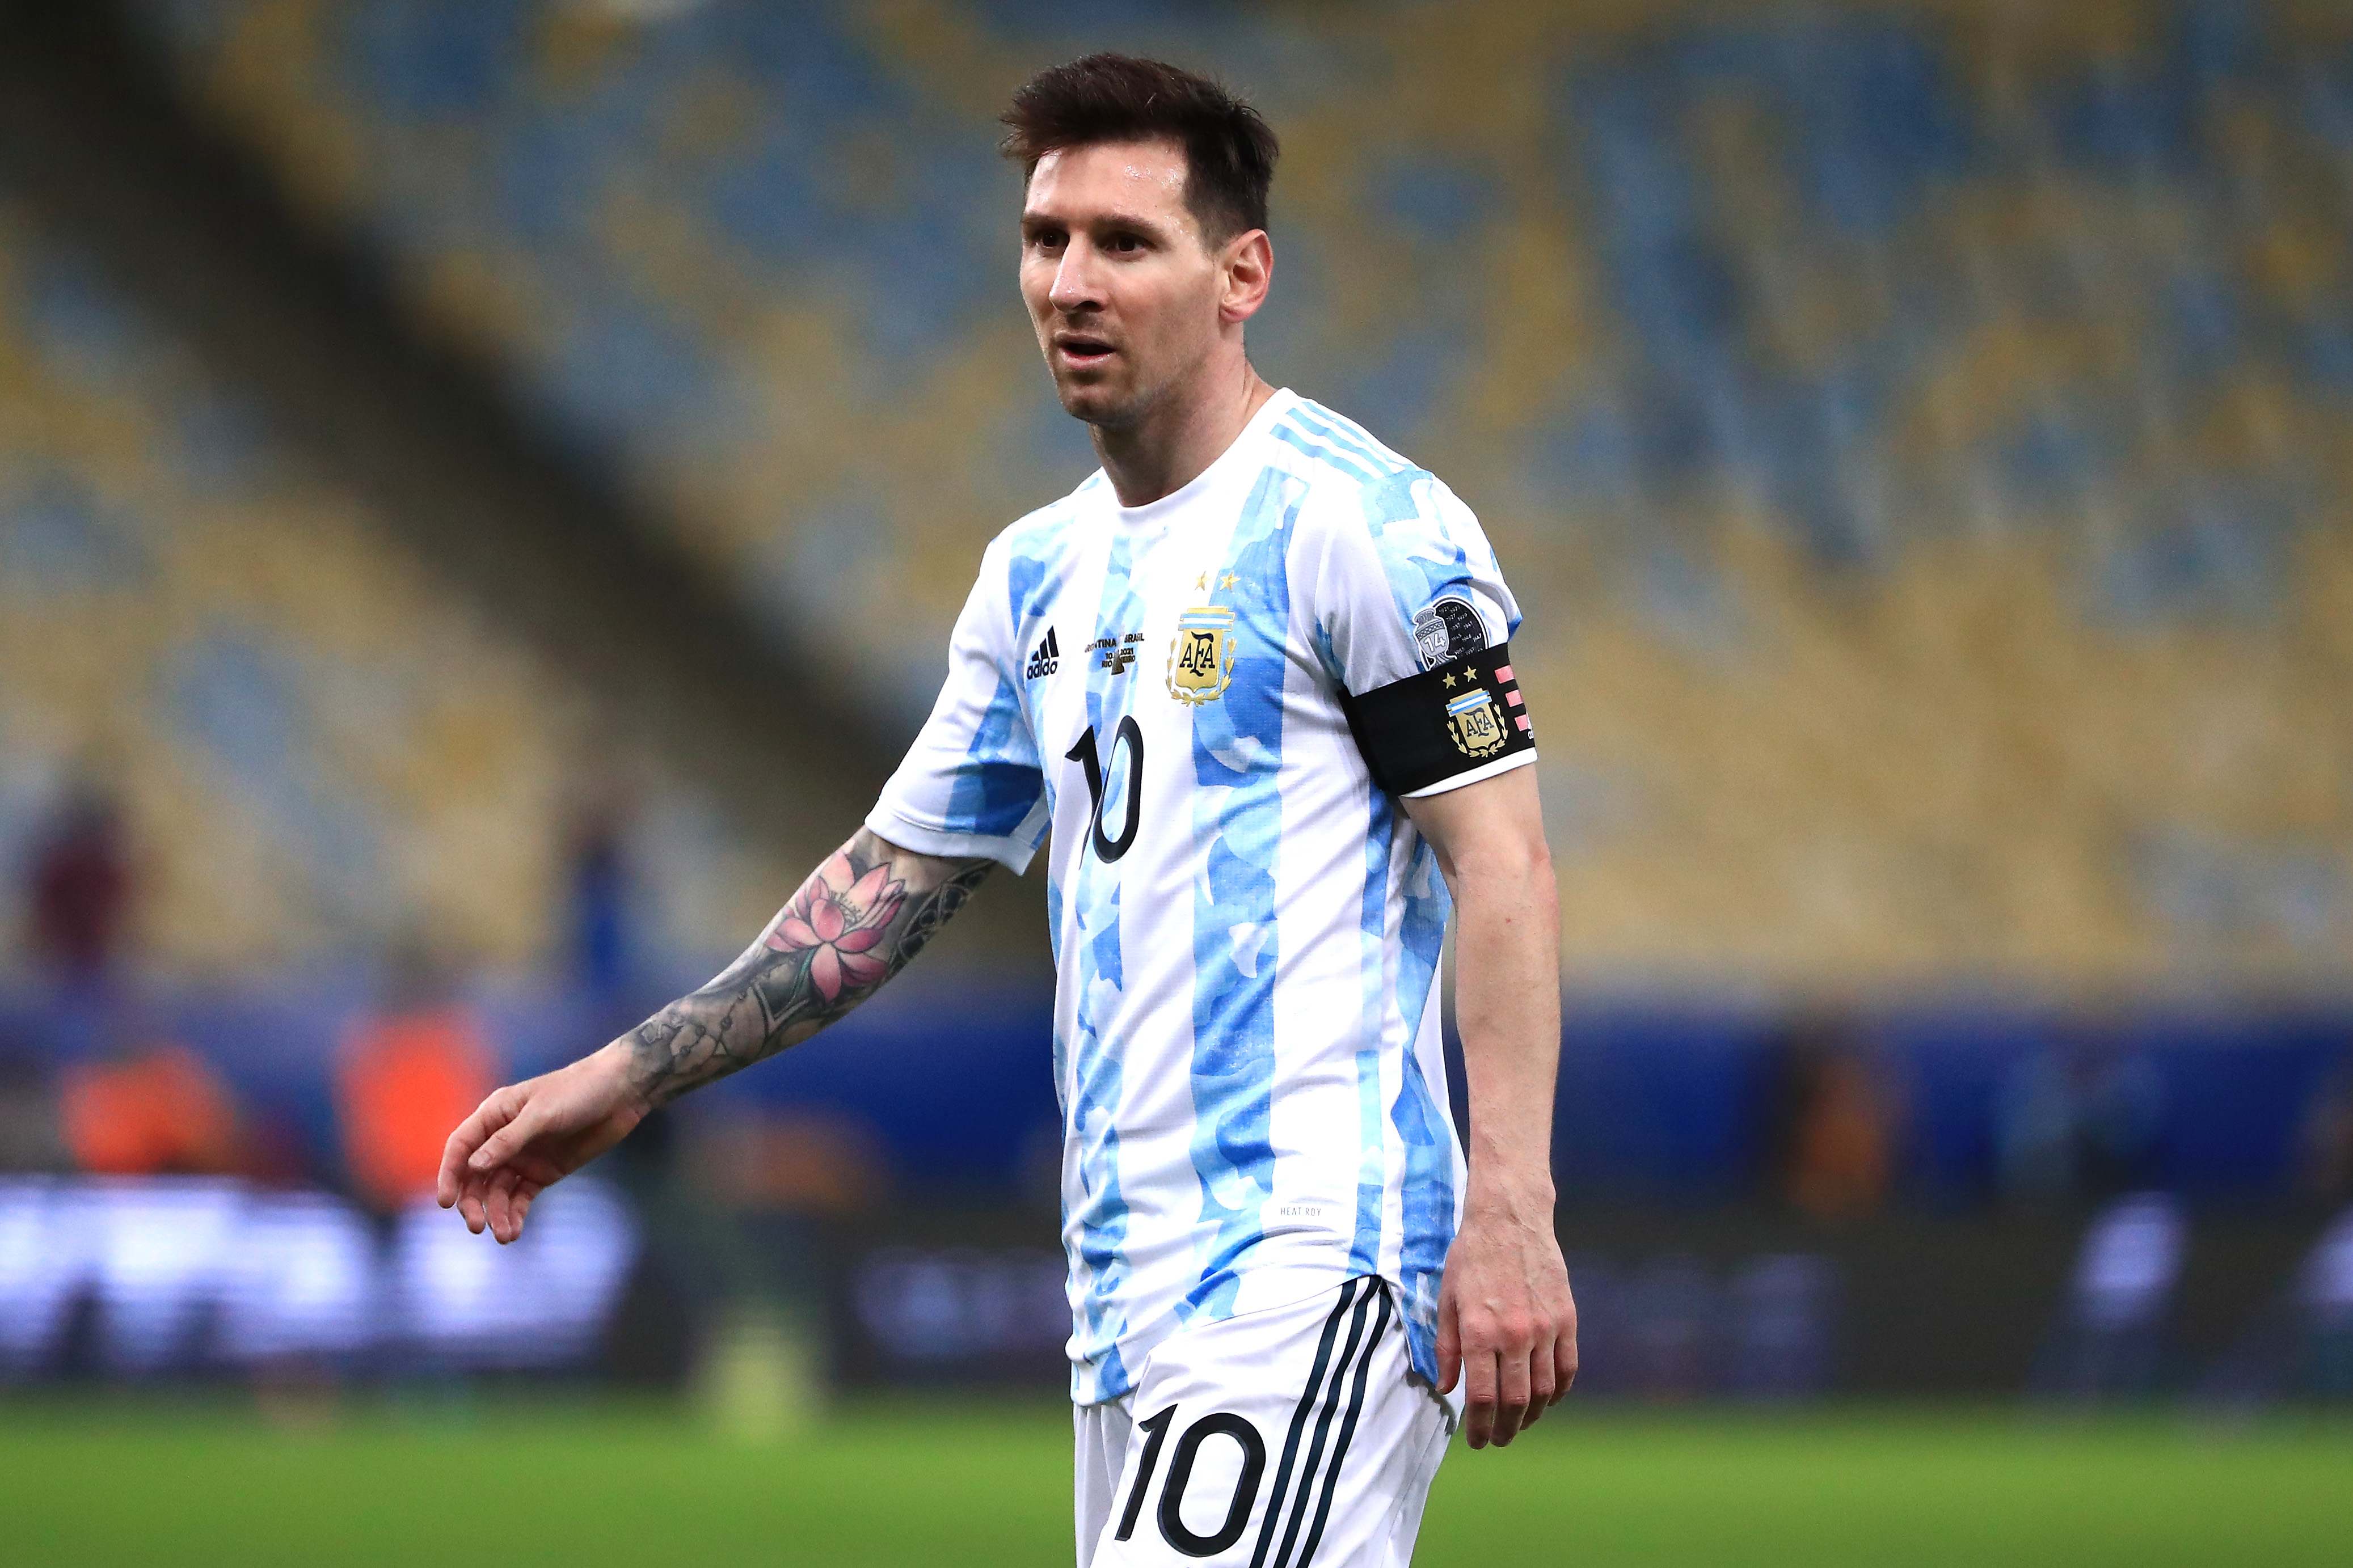 Lionel Messi of Argentina reacts during the final of Copa America Brazil 2021 between Brazil and Argentina at Maracana Stadium on July 10, 2021 in Rio de Janeiro, Brazil.